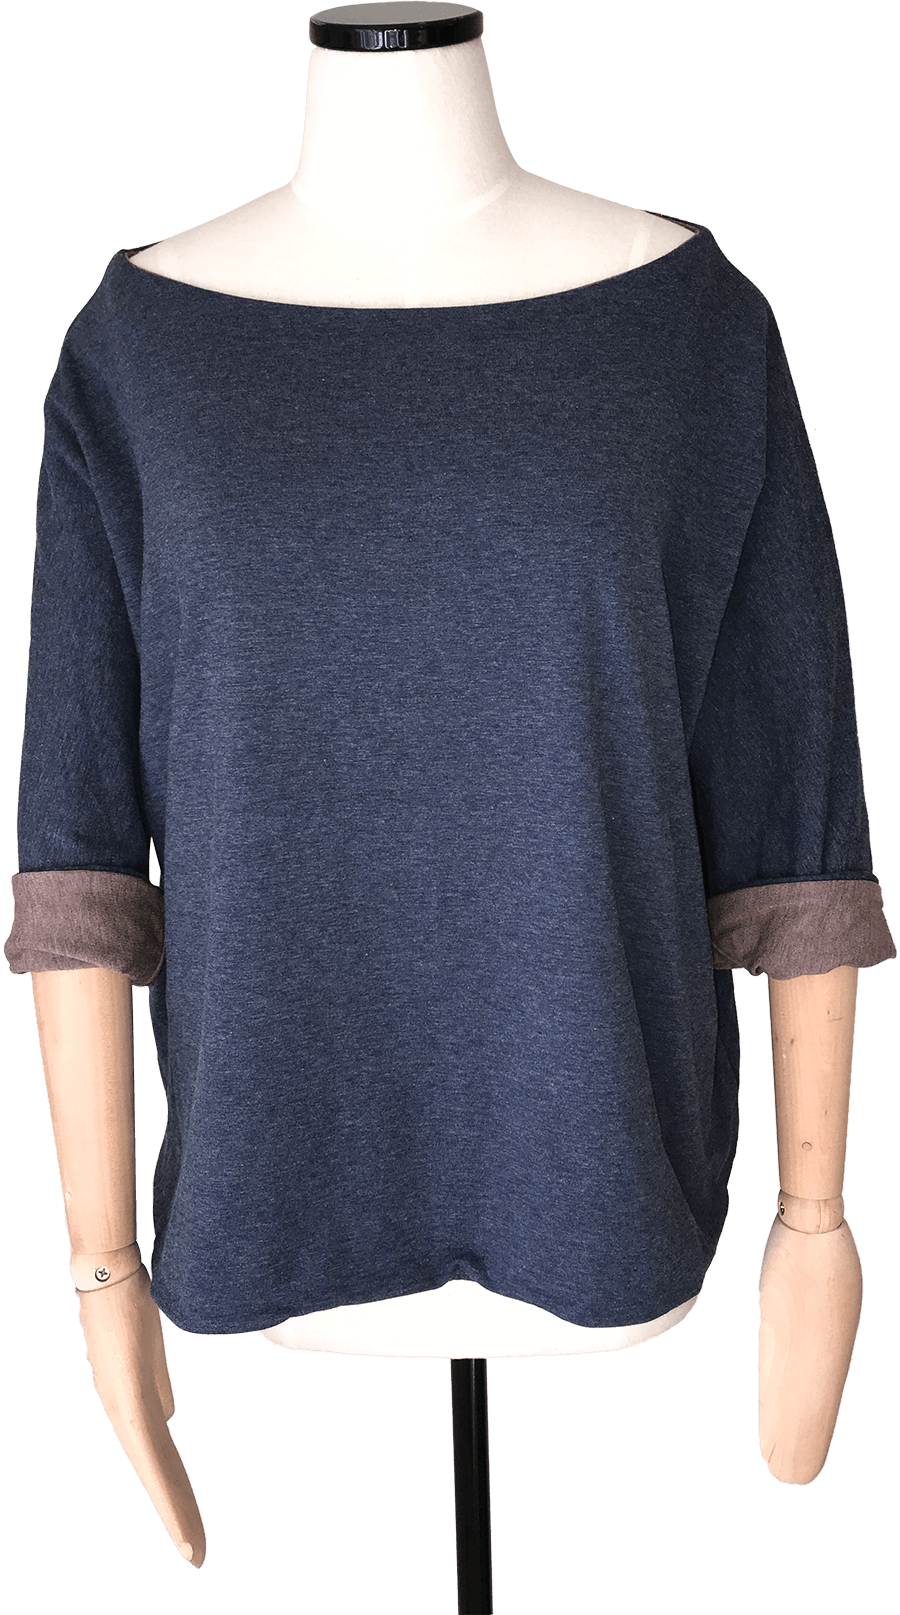 THE BOATNECK SHIRT